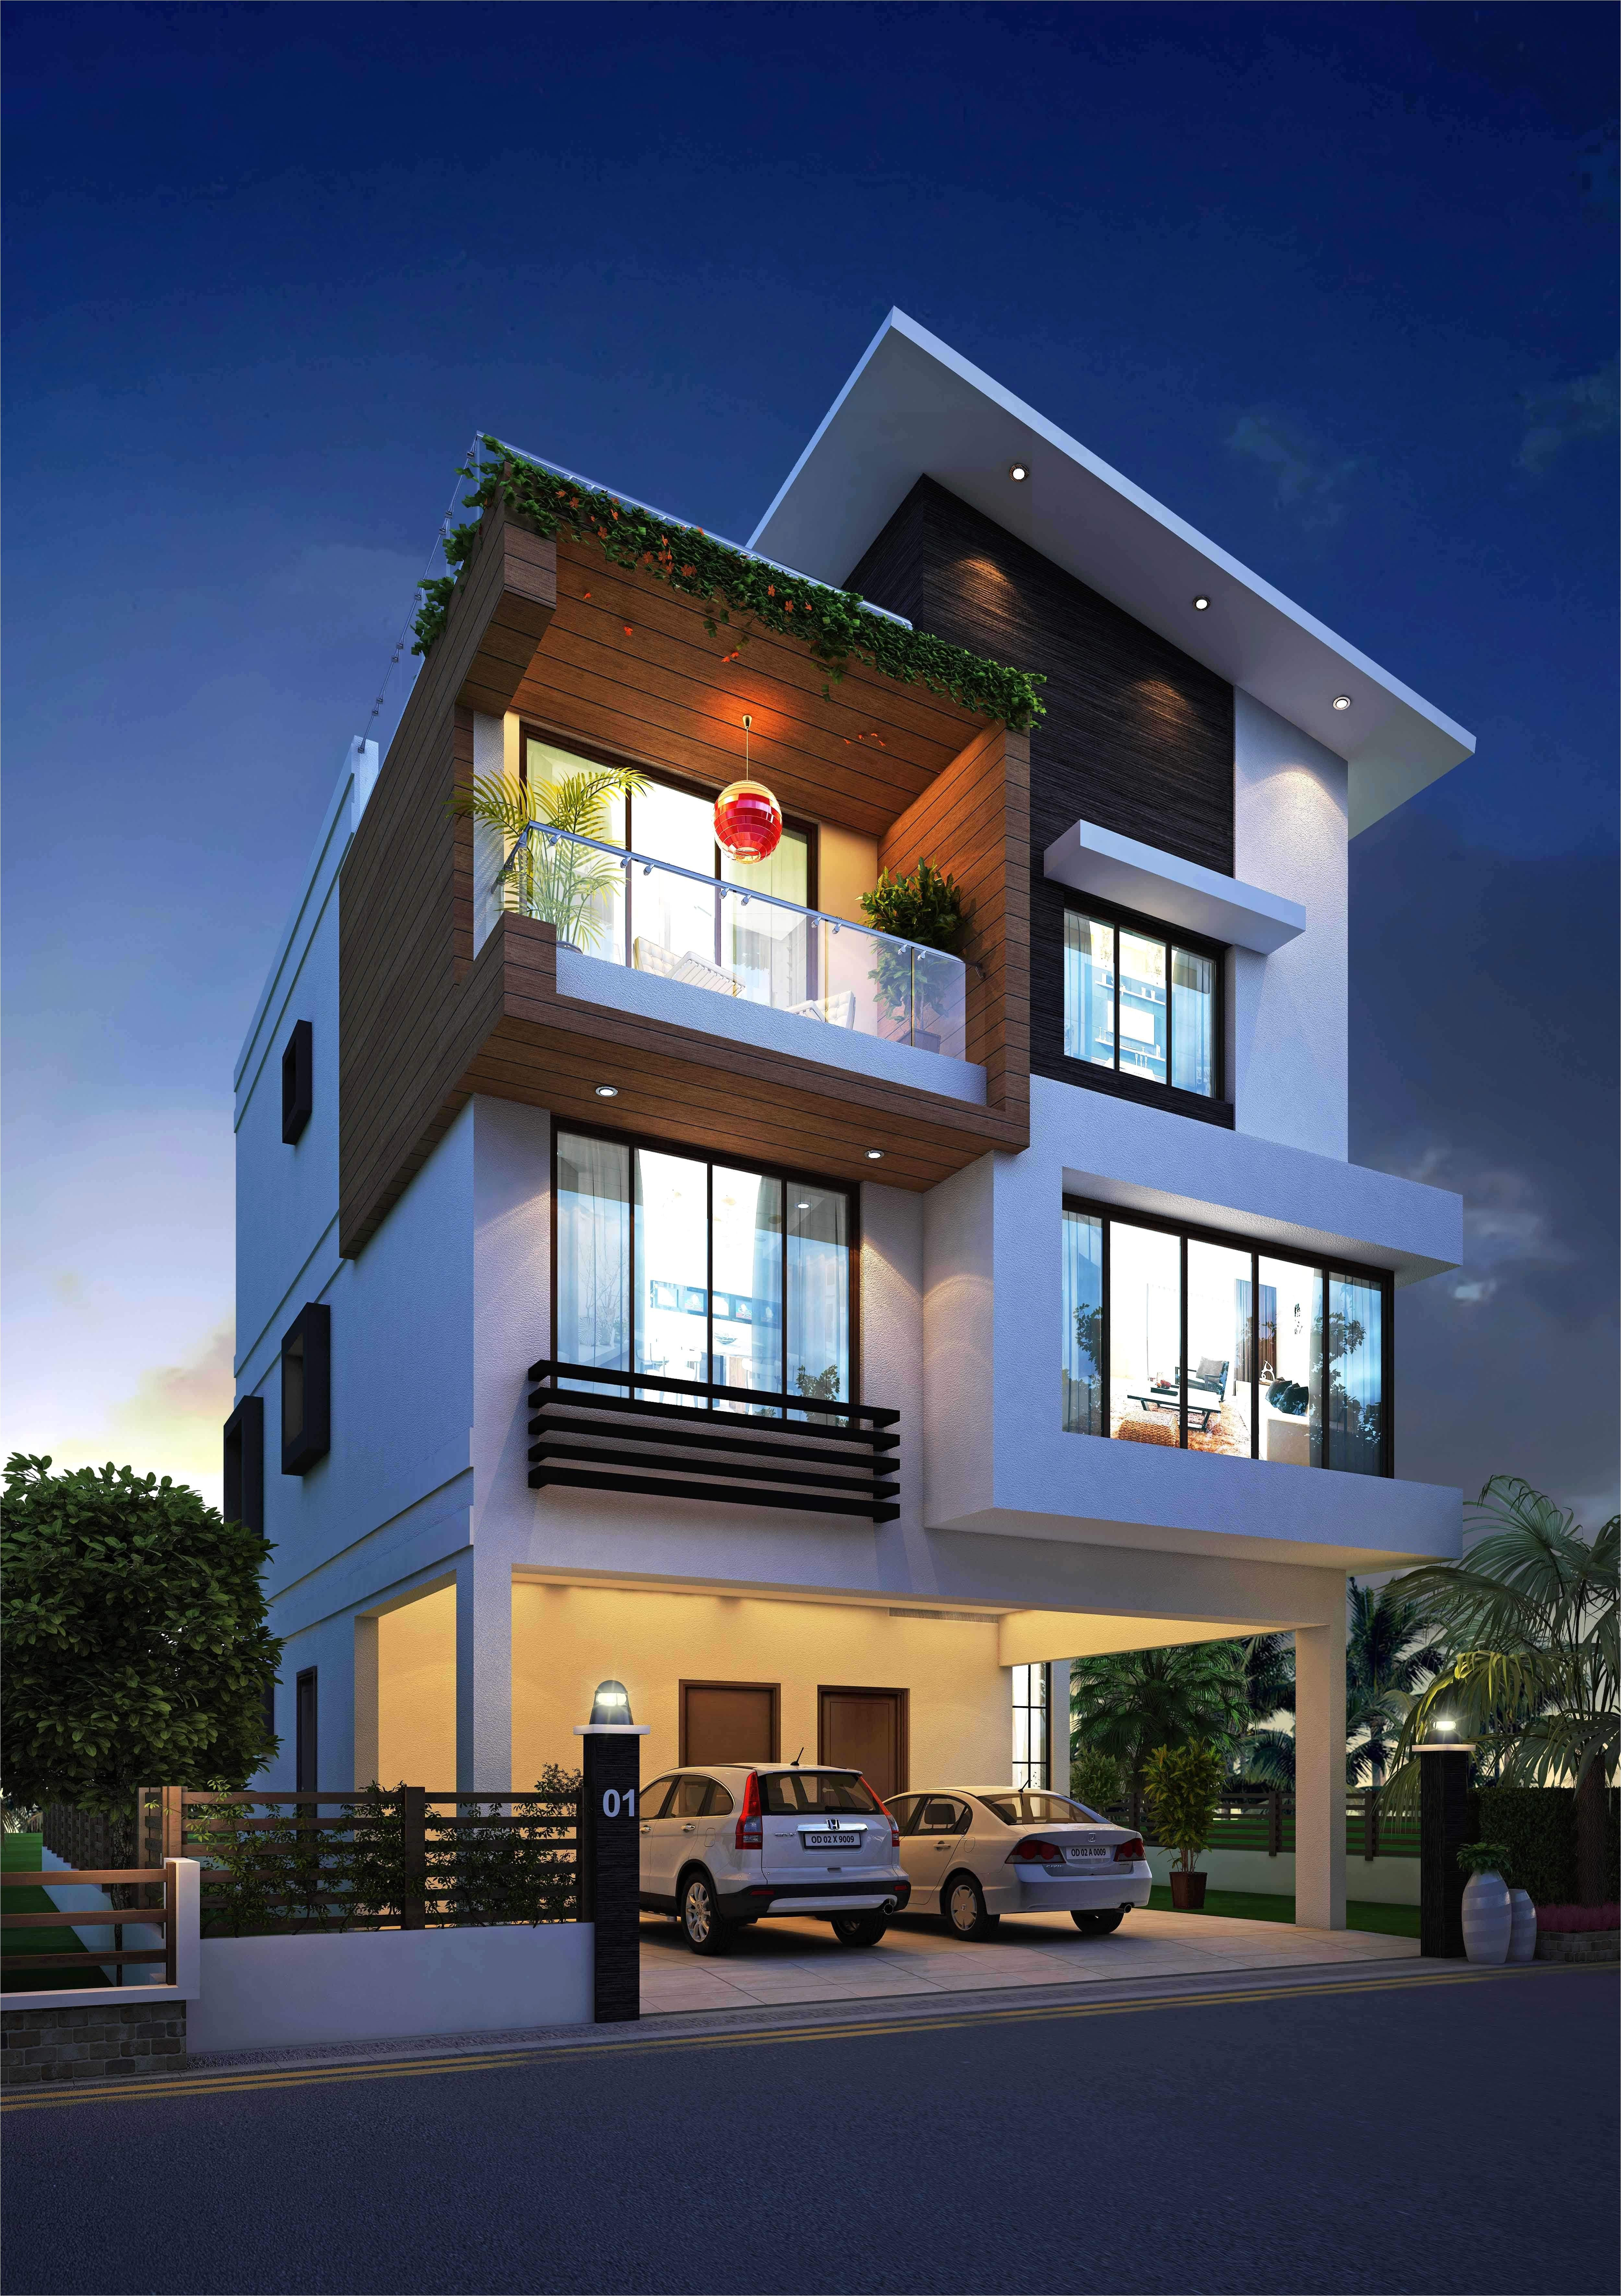 Can I Build A House for 100k Awesome House Plans Under 100k to Build Check More at S